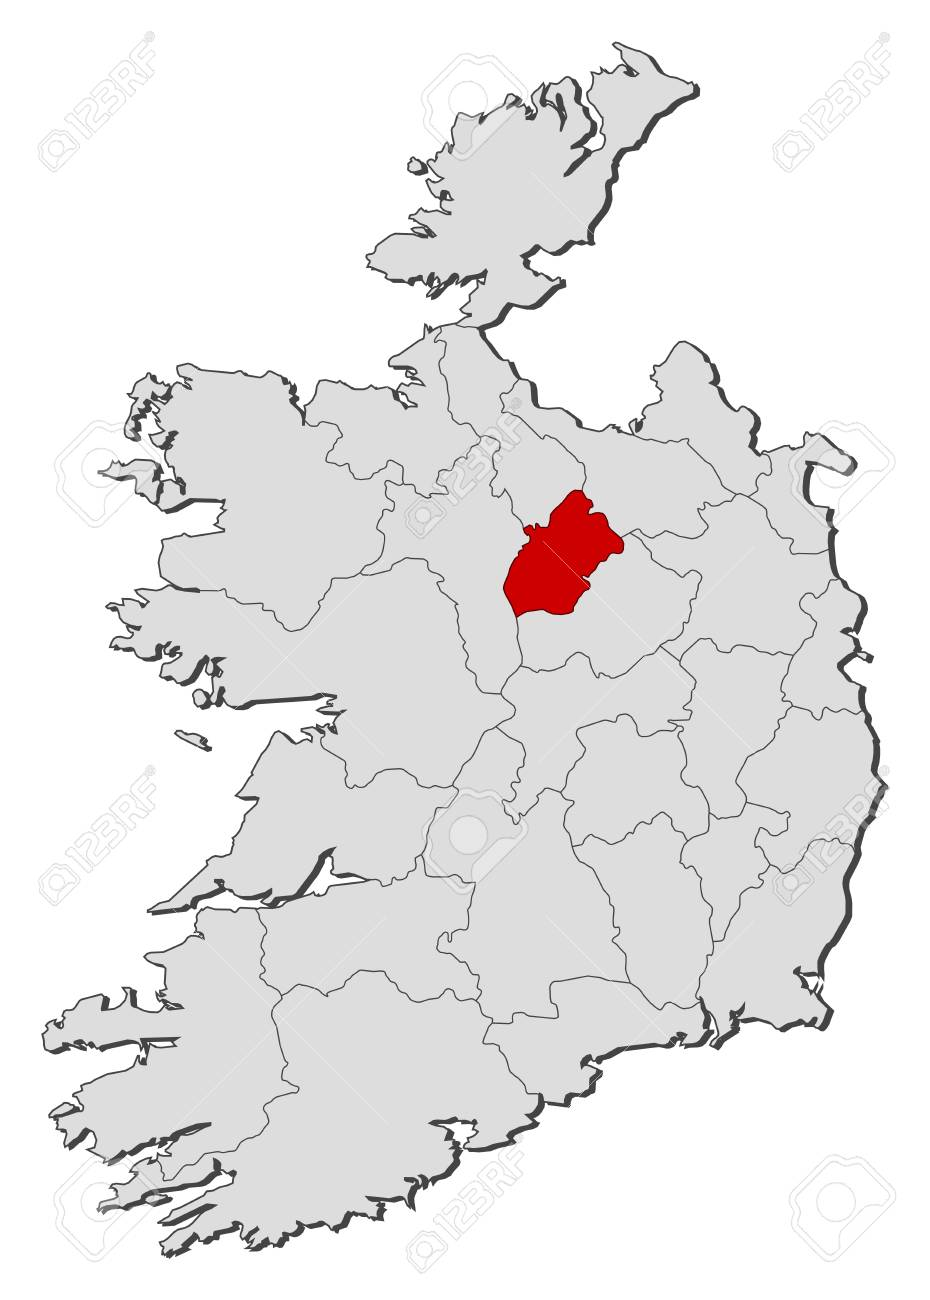 Map Of Ireland Longford.Map Of Ireland With The Provinces Longford Is Highlighted